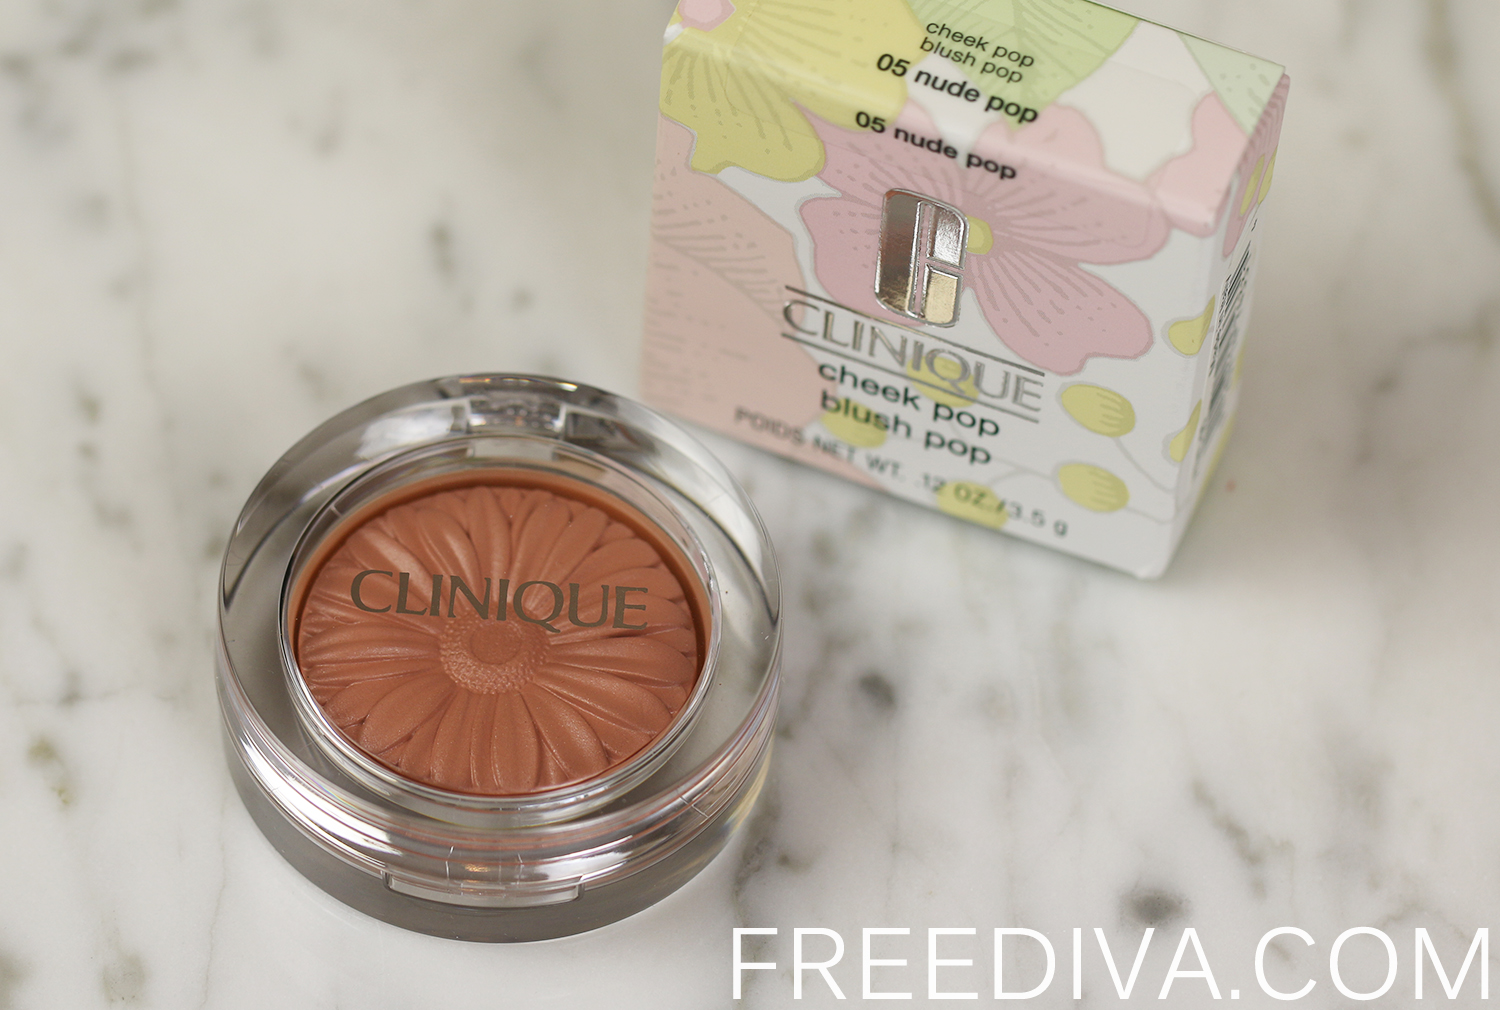 Clinique Cheek Pop Blush in 05 Nude Pop Spring 2015